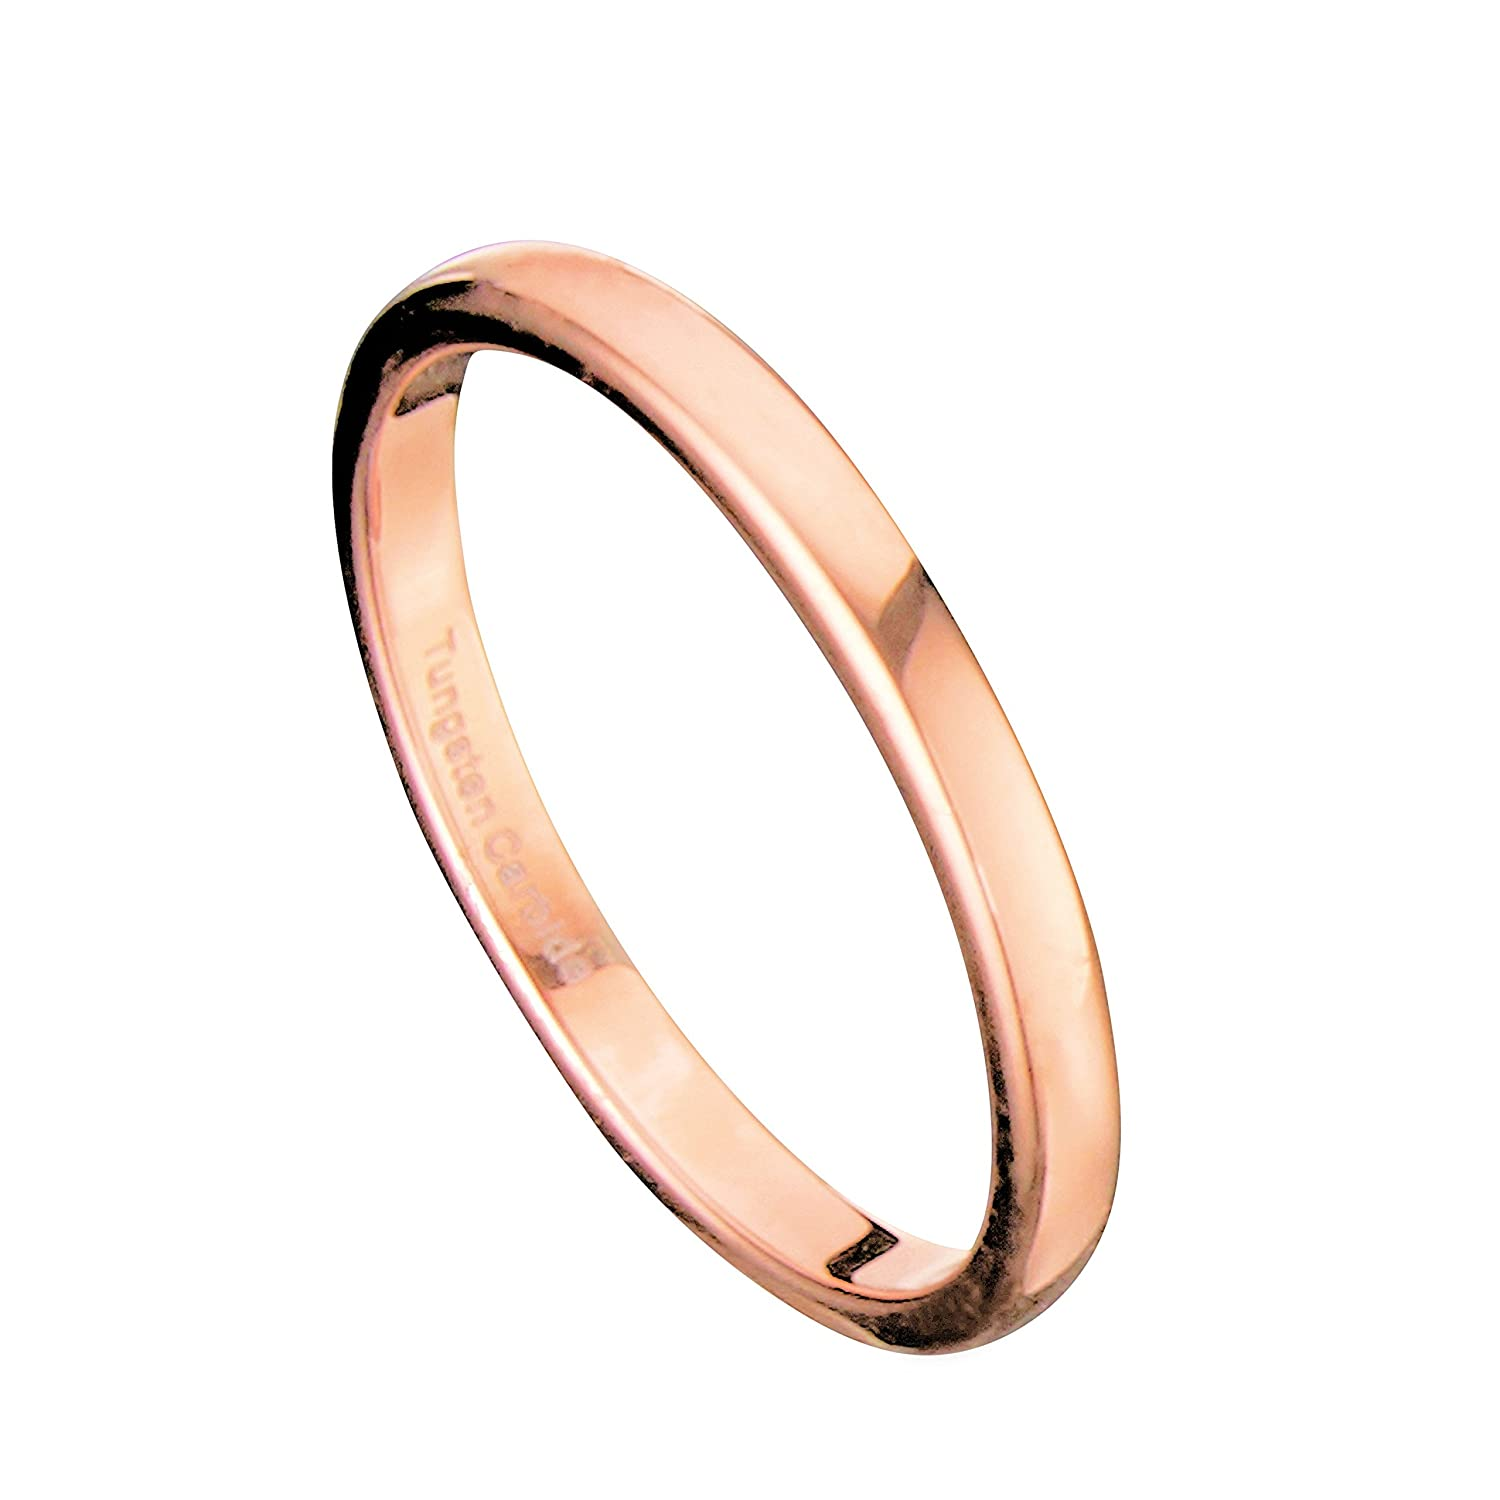 Bridal classics necklace sets mj 259 - 2mm Thin Rose Gold Plated Ring Tungsten Carbide Wedding Band Amazon Com